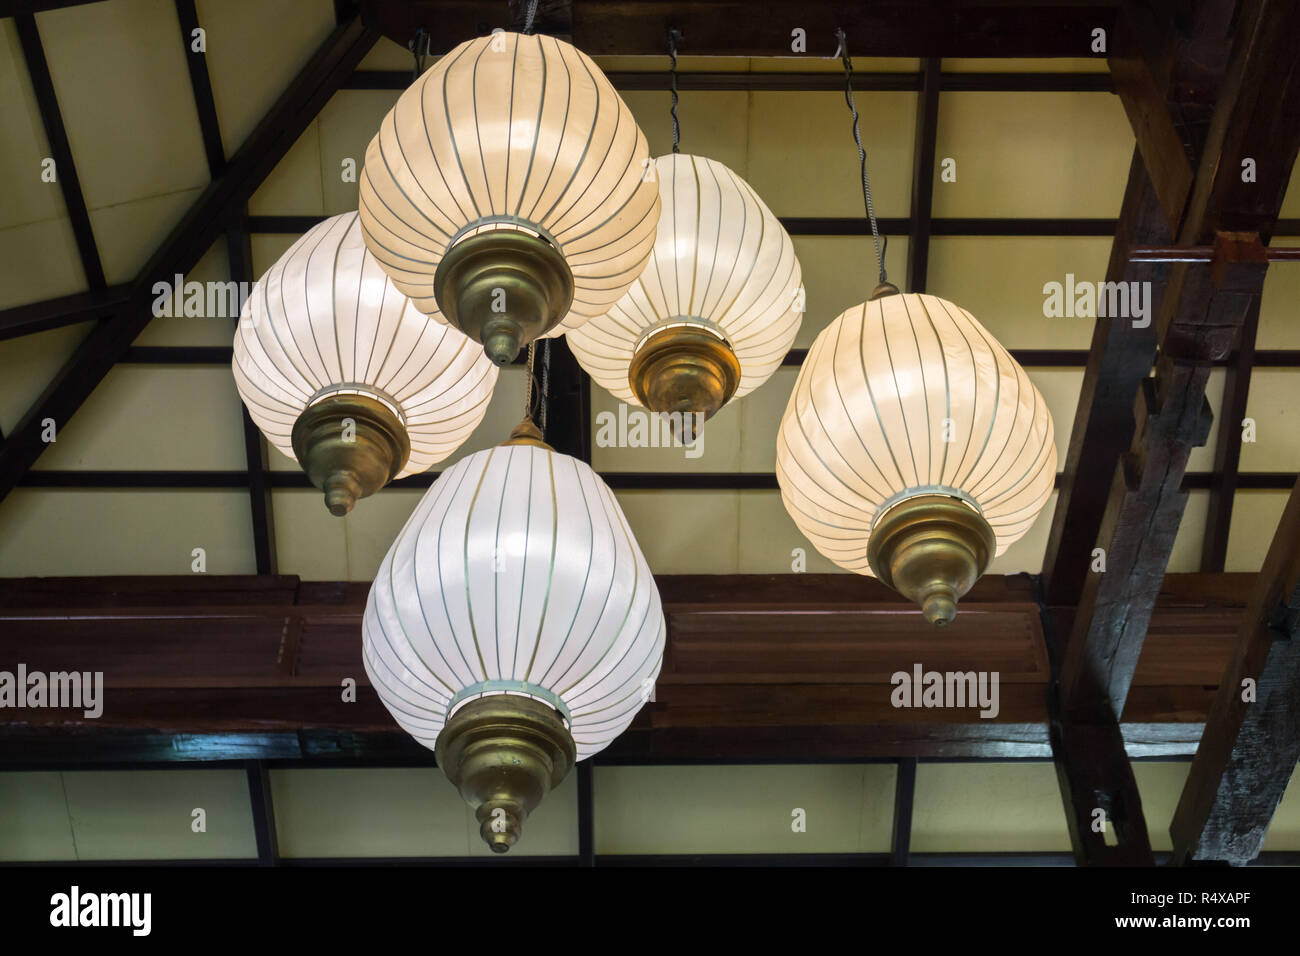 Interior Decorating Hanging Lantern Lamps - Stock Image